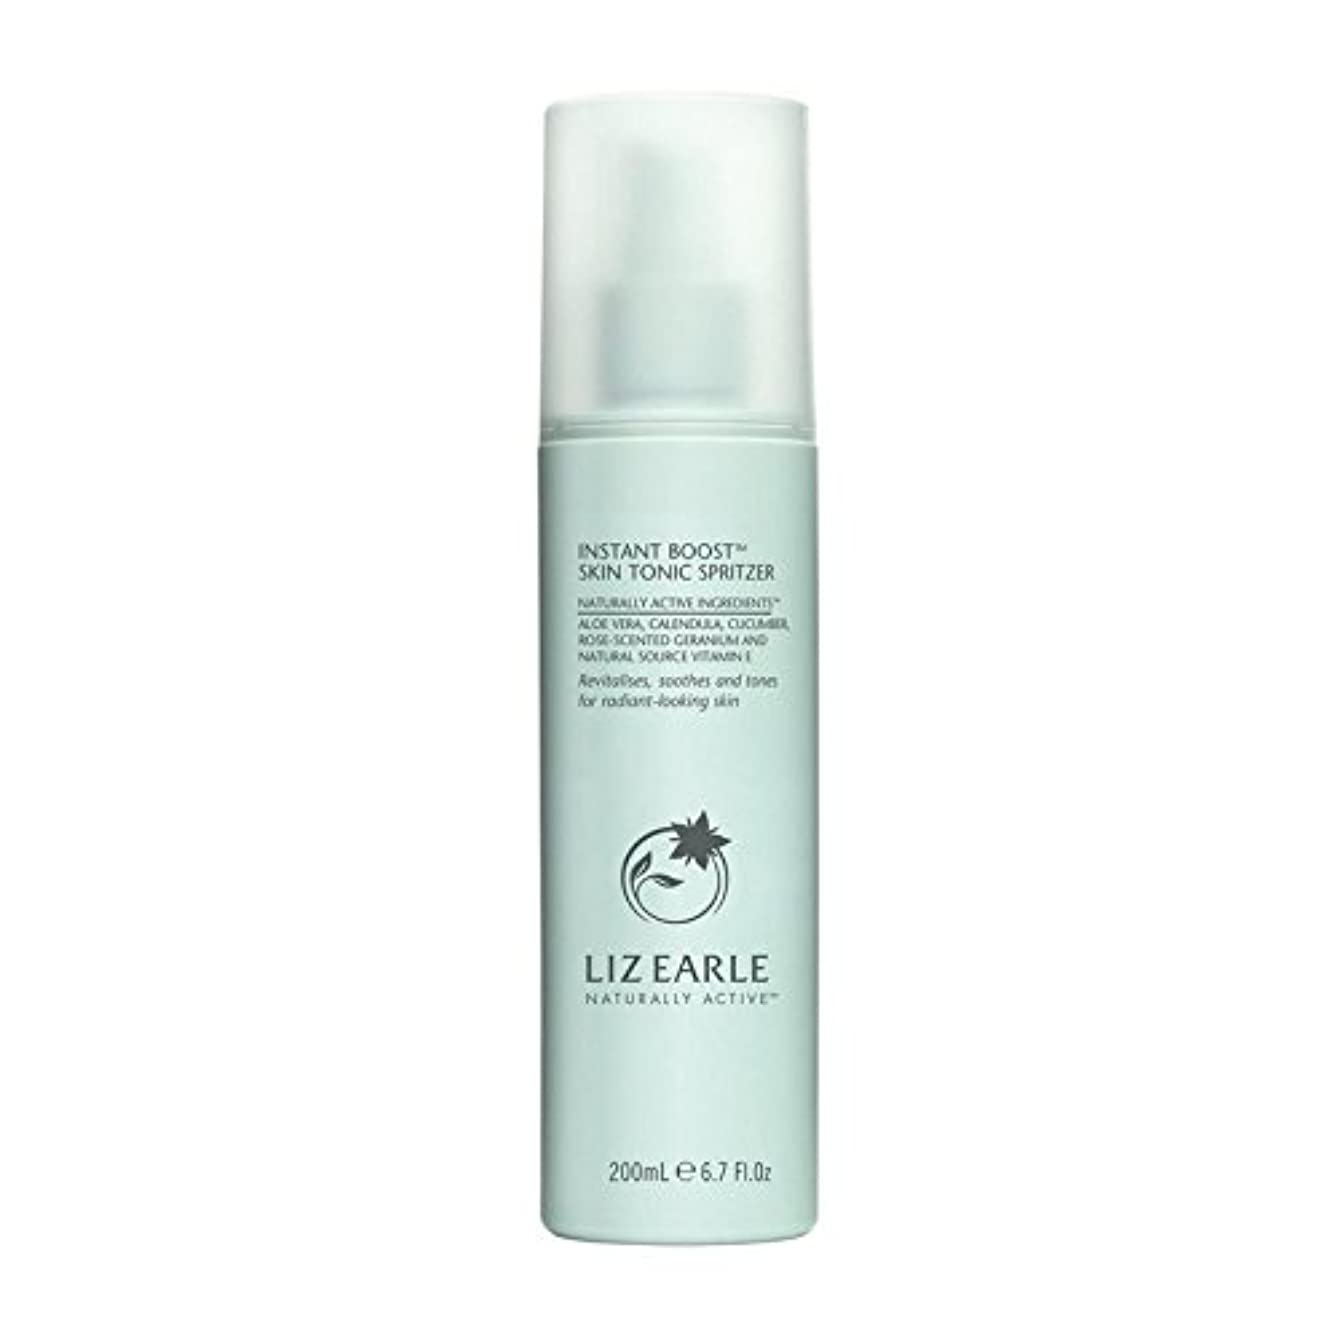 Liz Earle Instant Boost Skin Tonic Spritzer 200ml (Pack of 6) - リズアールインスタントブーストスキントニックスプリッツァーの200ミリリットル x6 [並行輸入品]